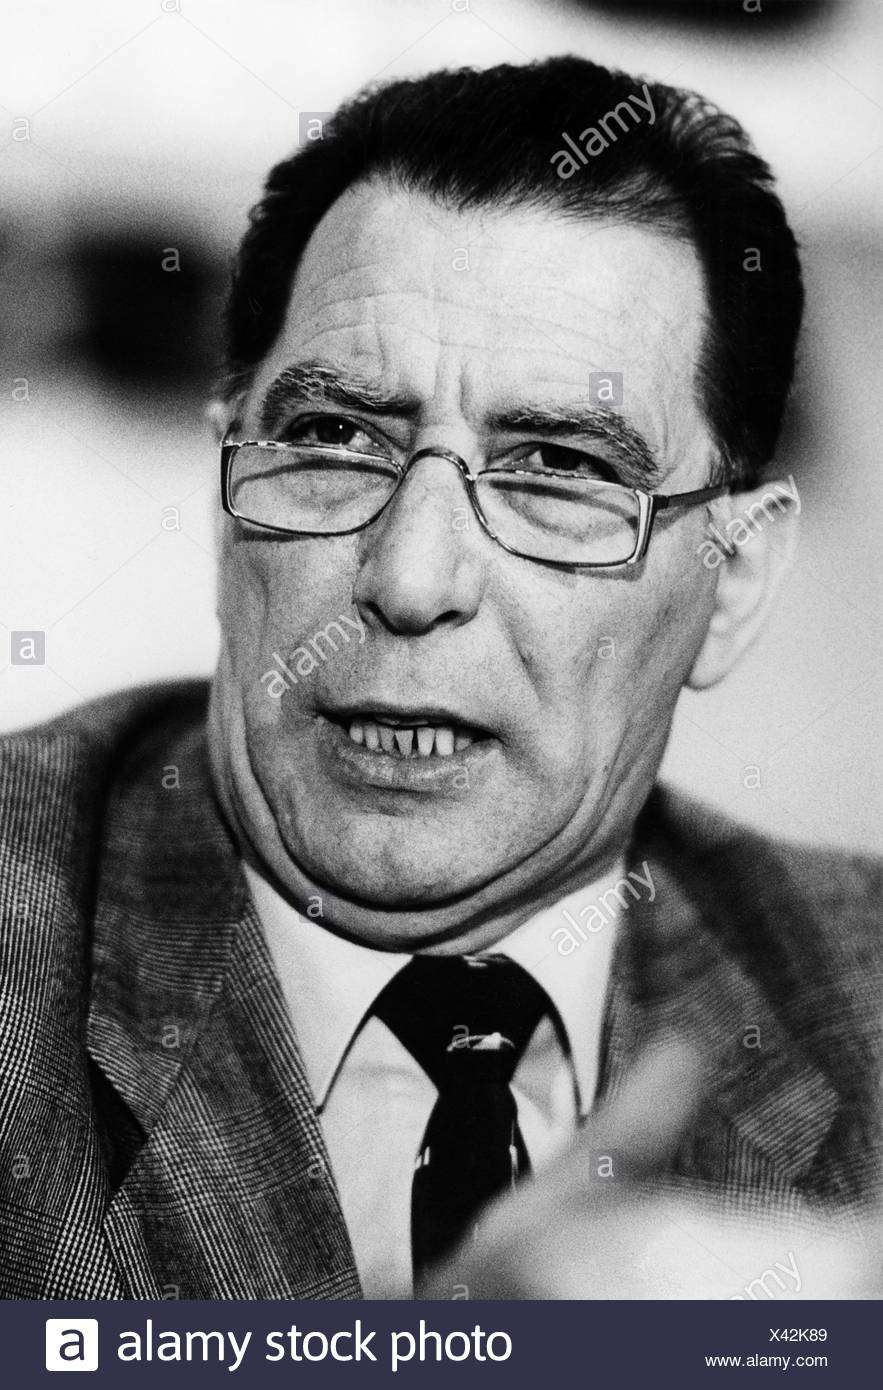 Geuenich, Michael, member of the German Confederation of Trade Unions, portrait, 1985, Additional-Rights-Clearances-NA - Stock Image